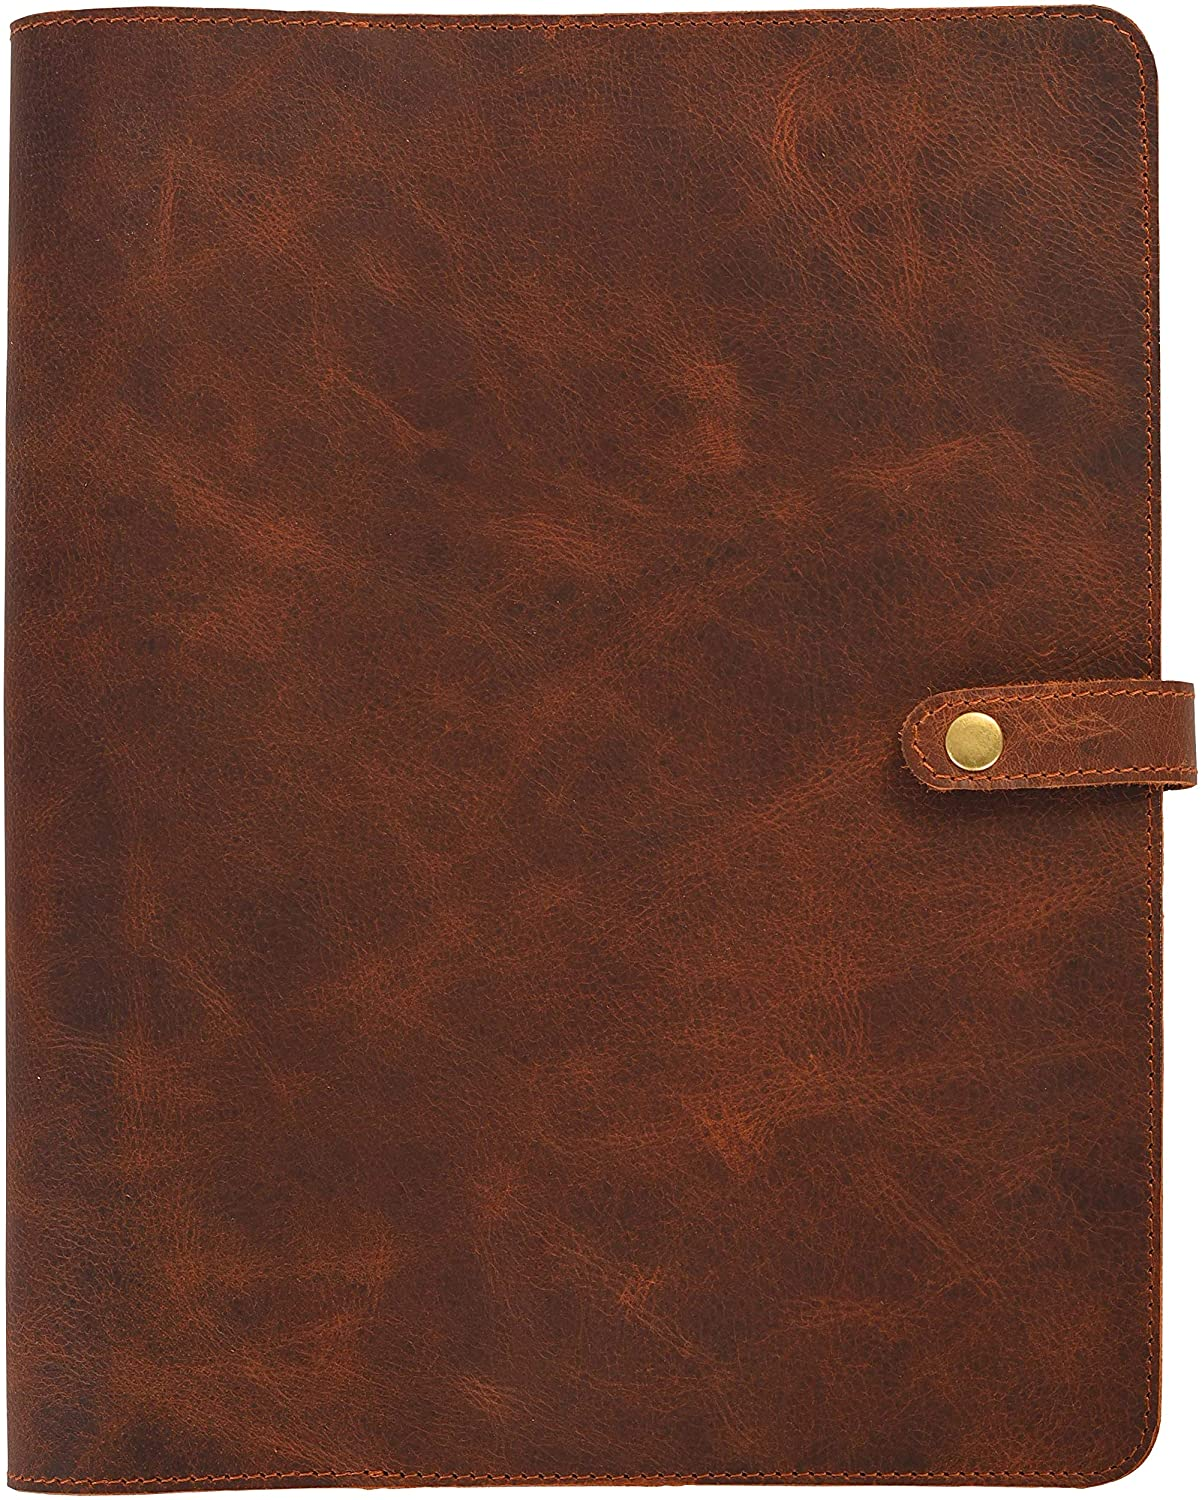 Genuine Leather Notebook Cover  Leather Journal Cover 2021 Agenda Planner Cover  Planner Organizer Wallet